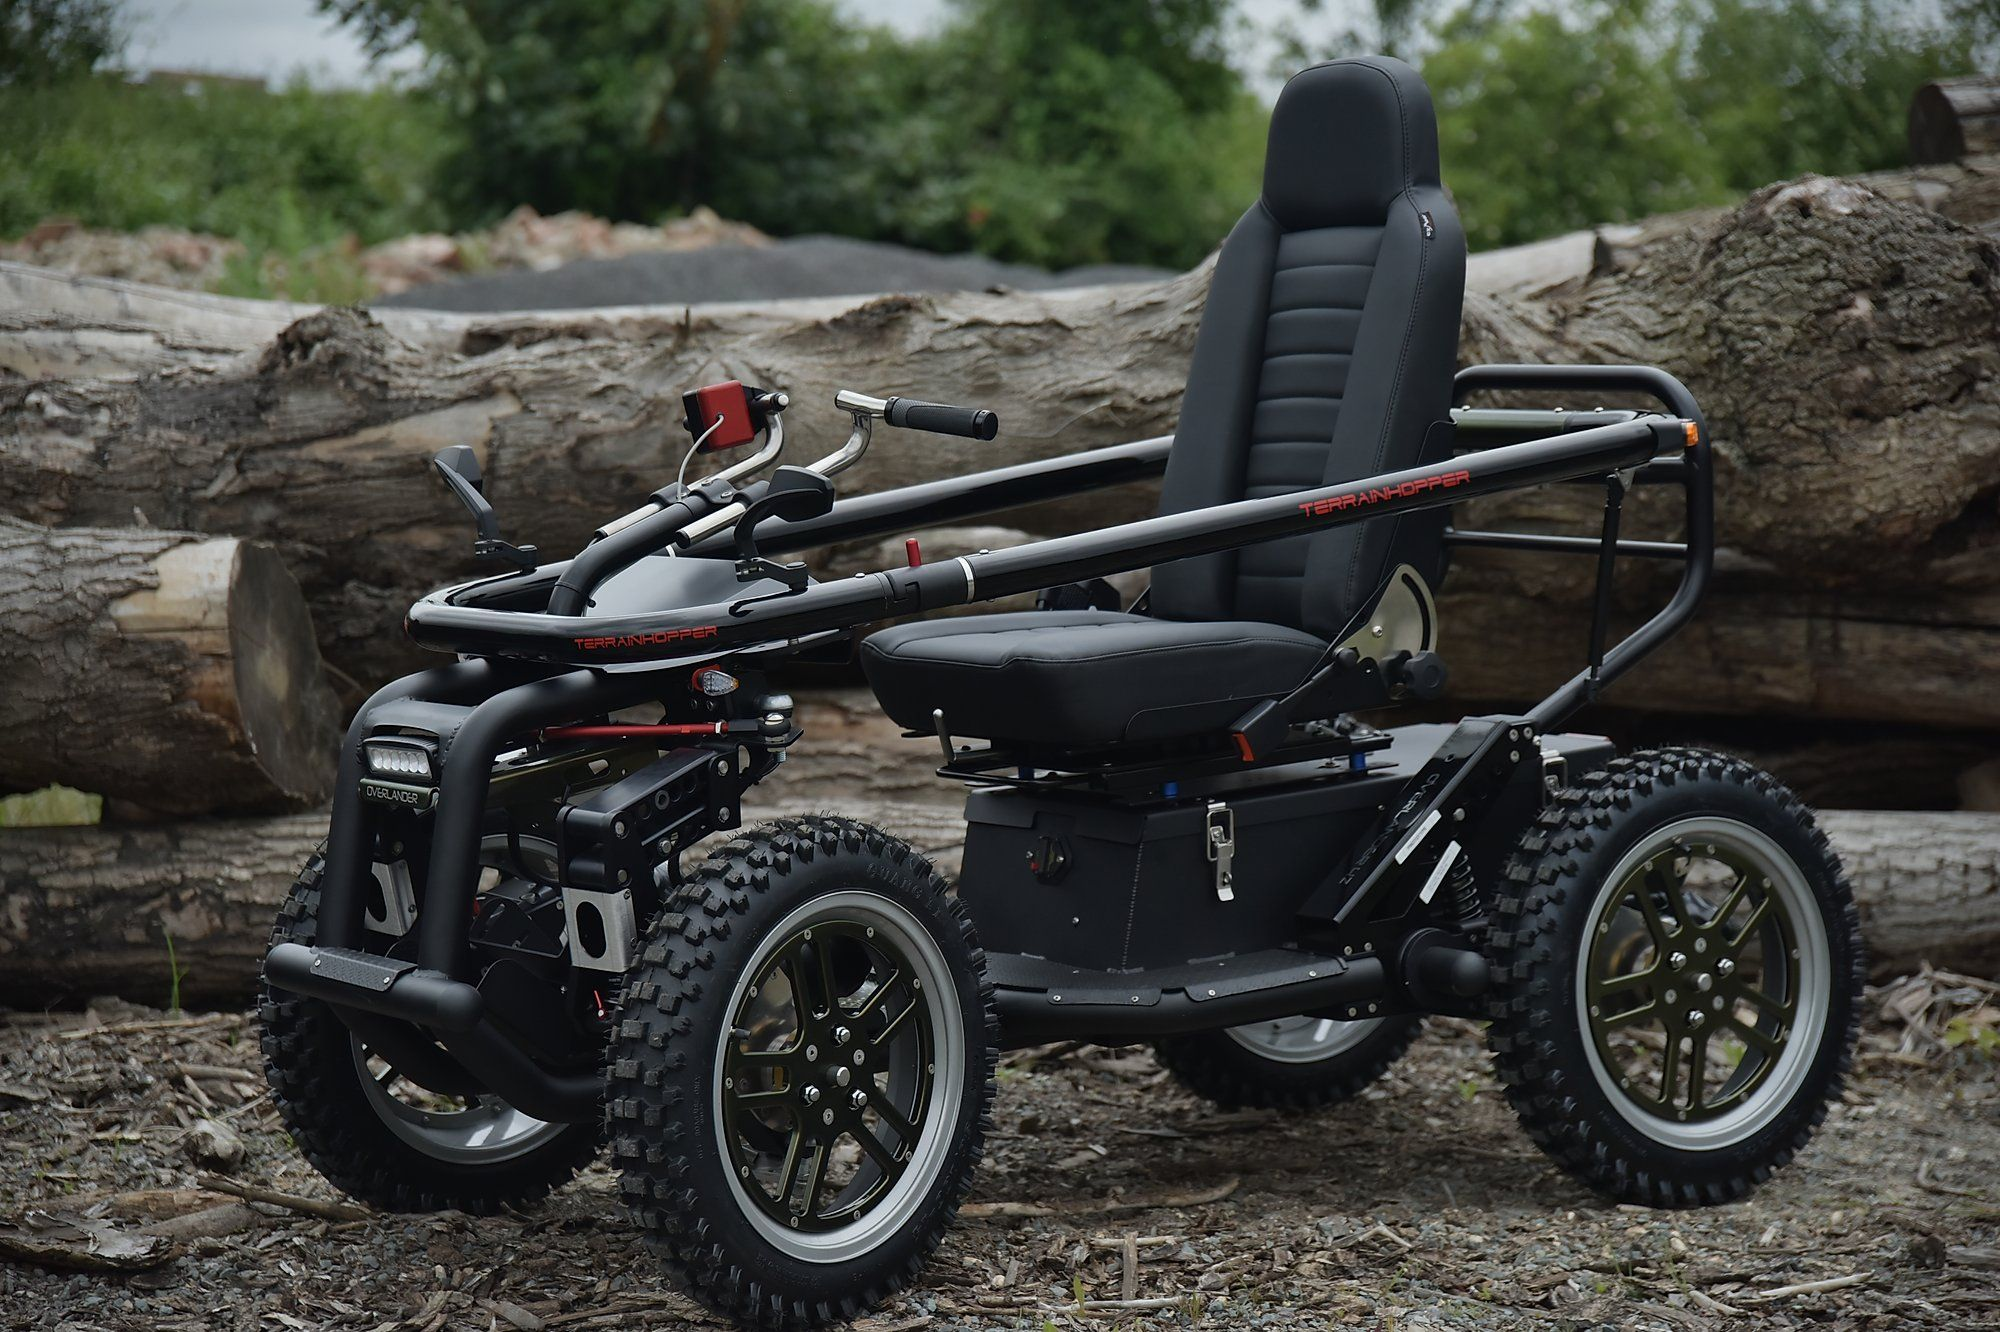 Overlander 4zs Terrainhopper Lincolnshire Electric Motor For Car Power Scooter